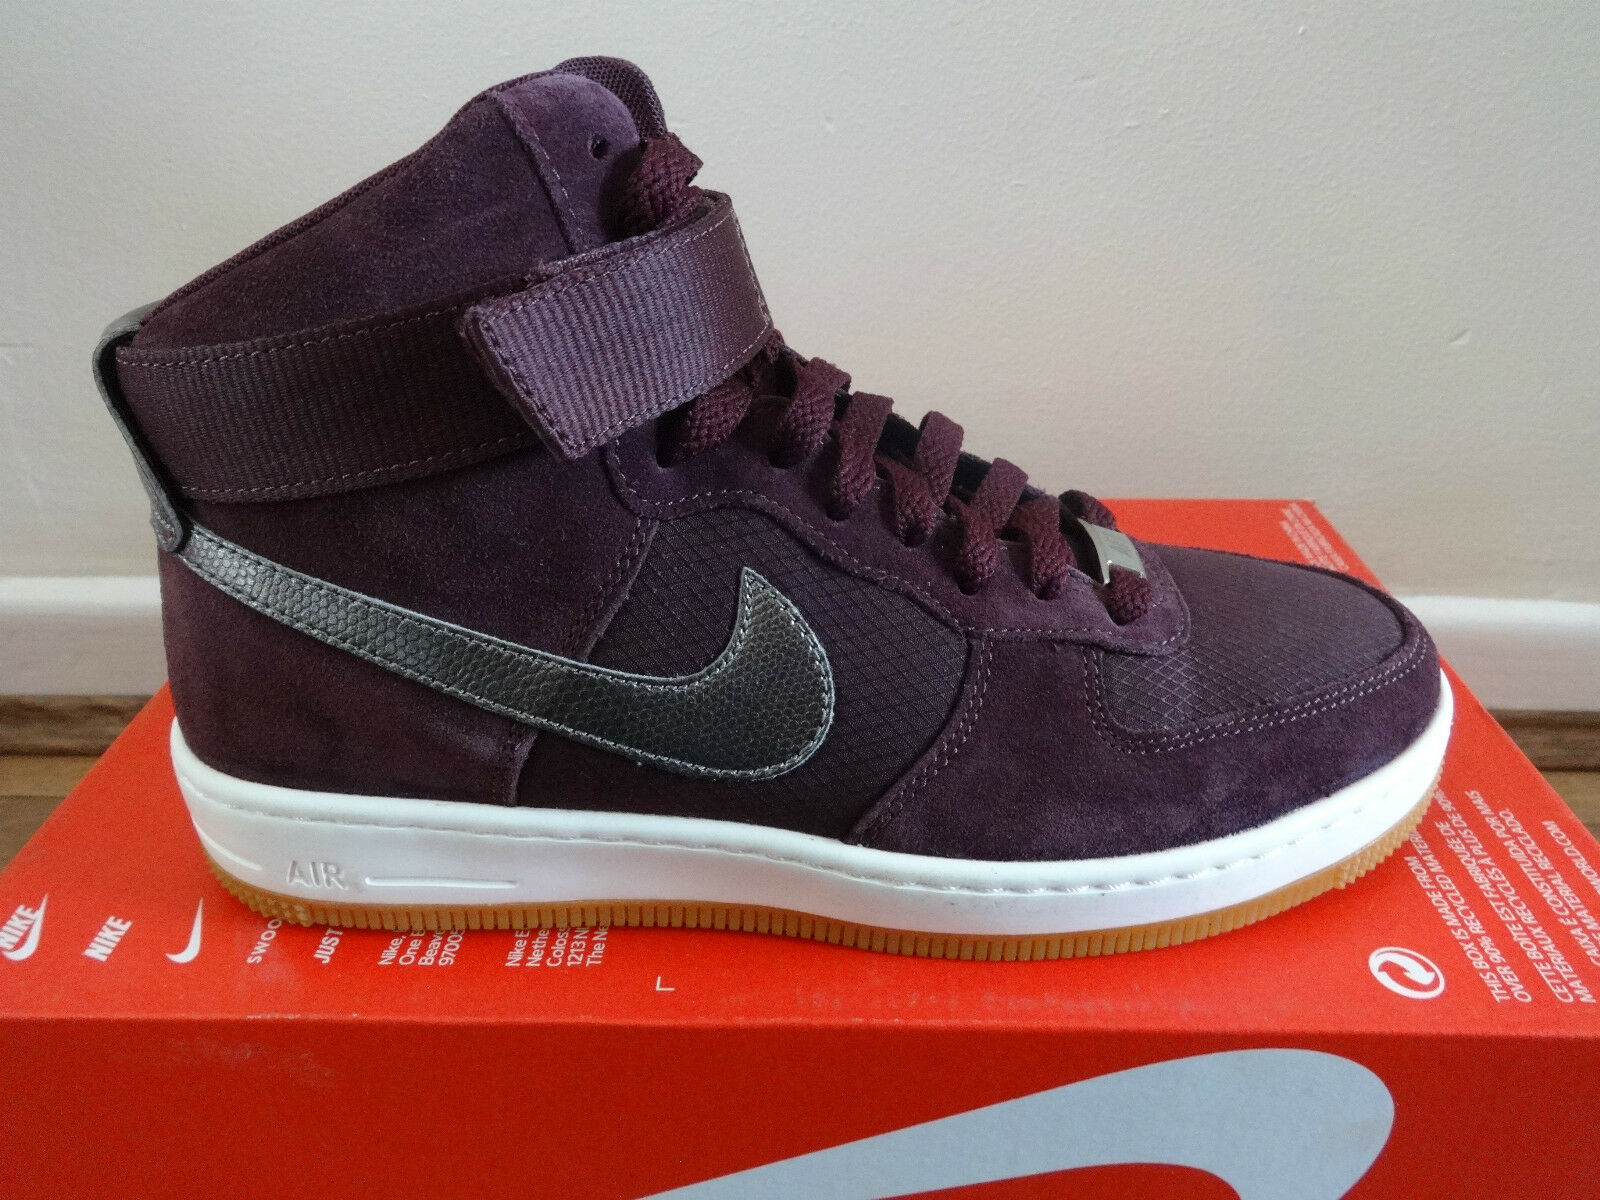 Nike de mujer AF1 Ultra Force 654851 Mid Tenis Entrenadores Zapatos 654851 Force 600 373149